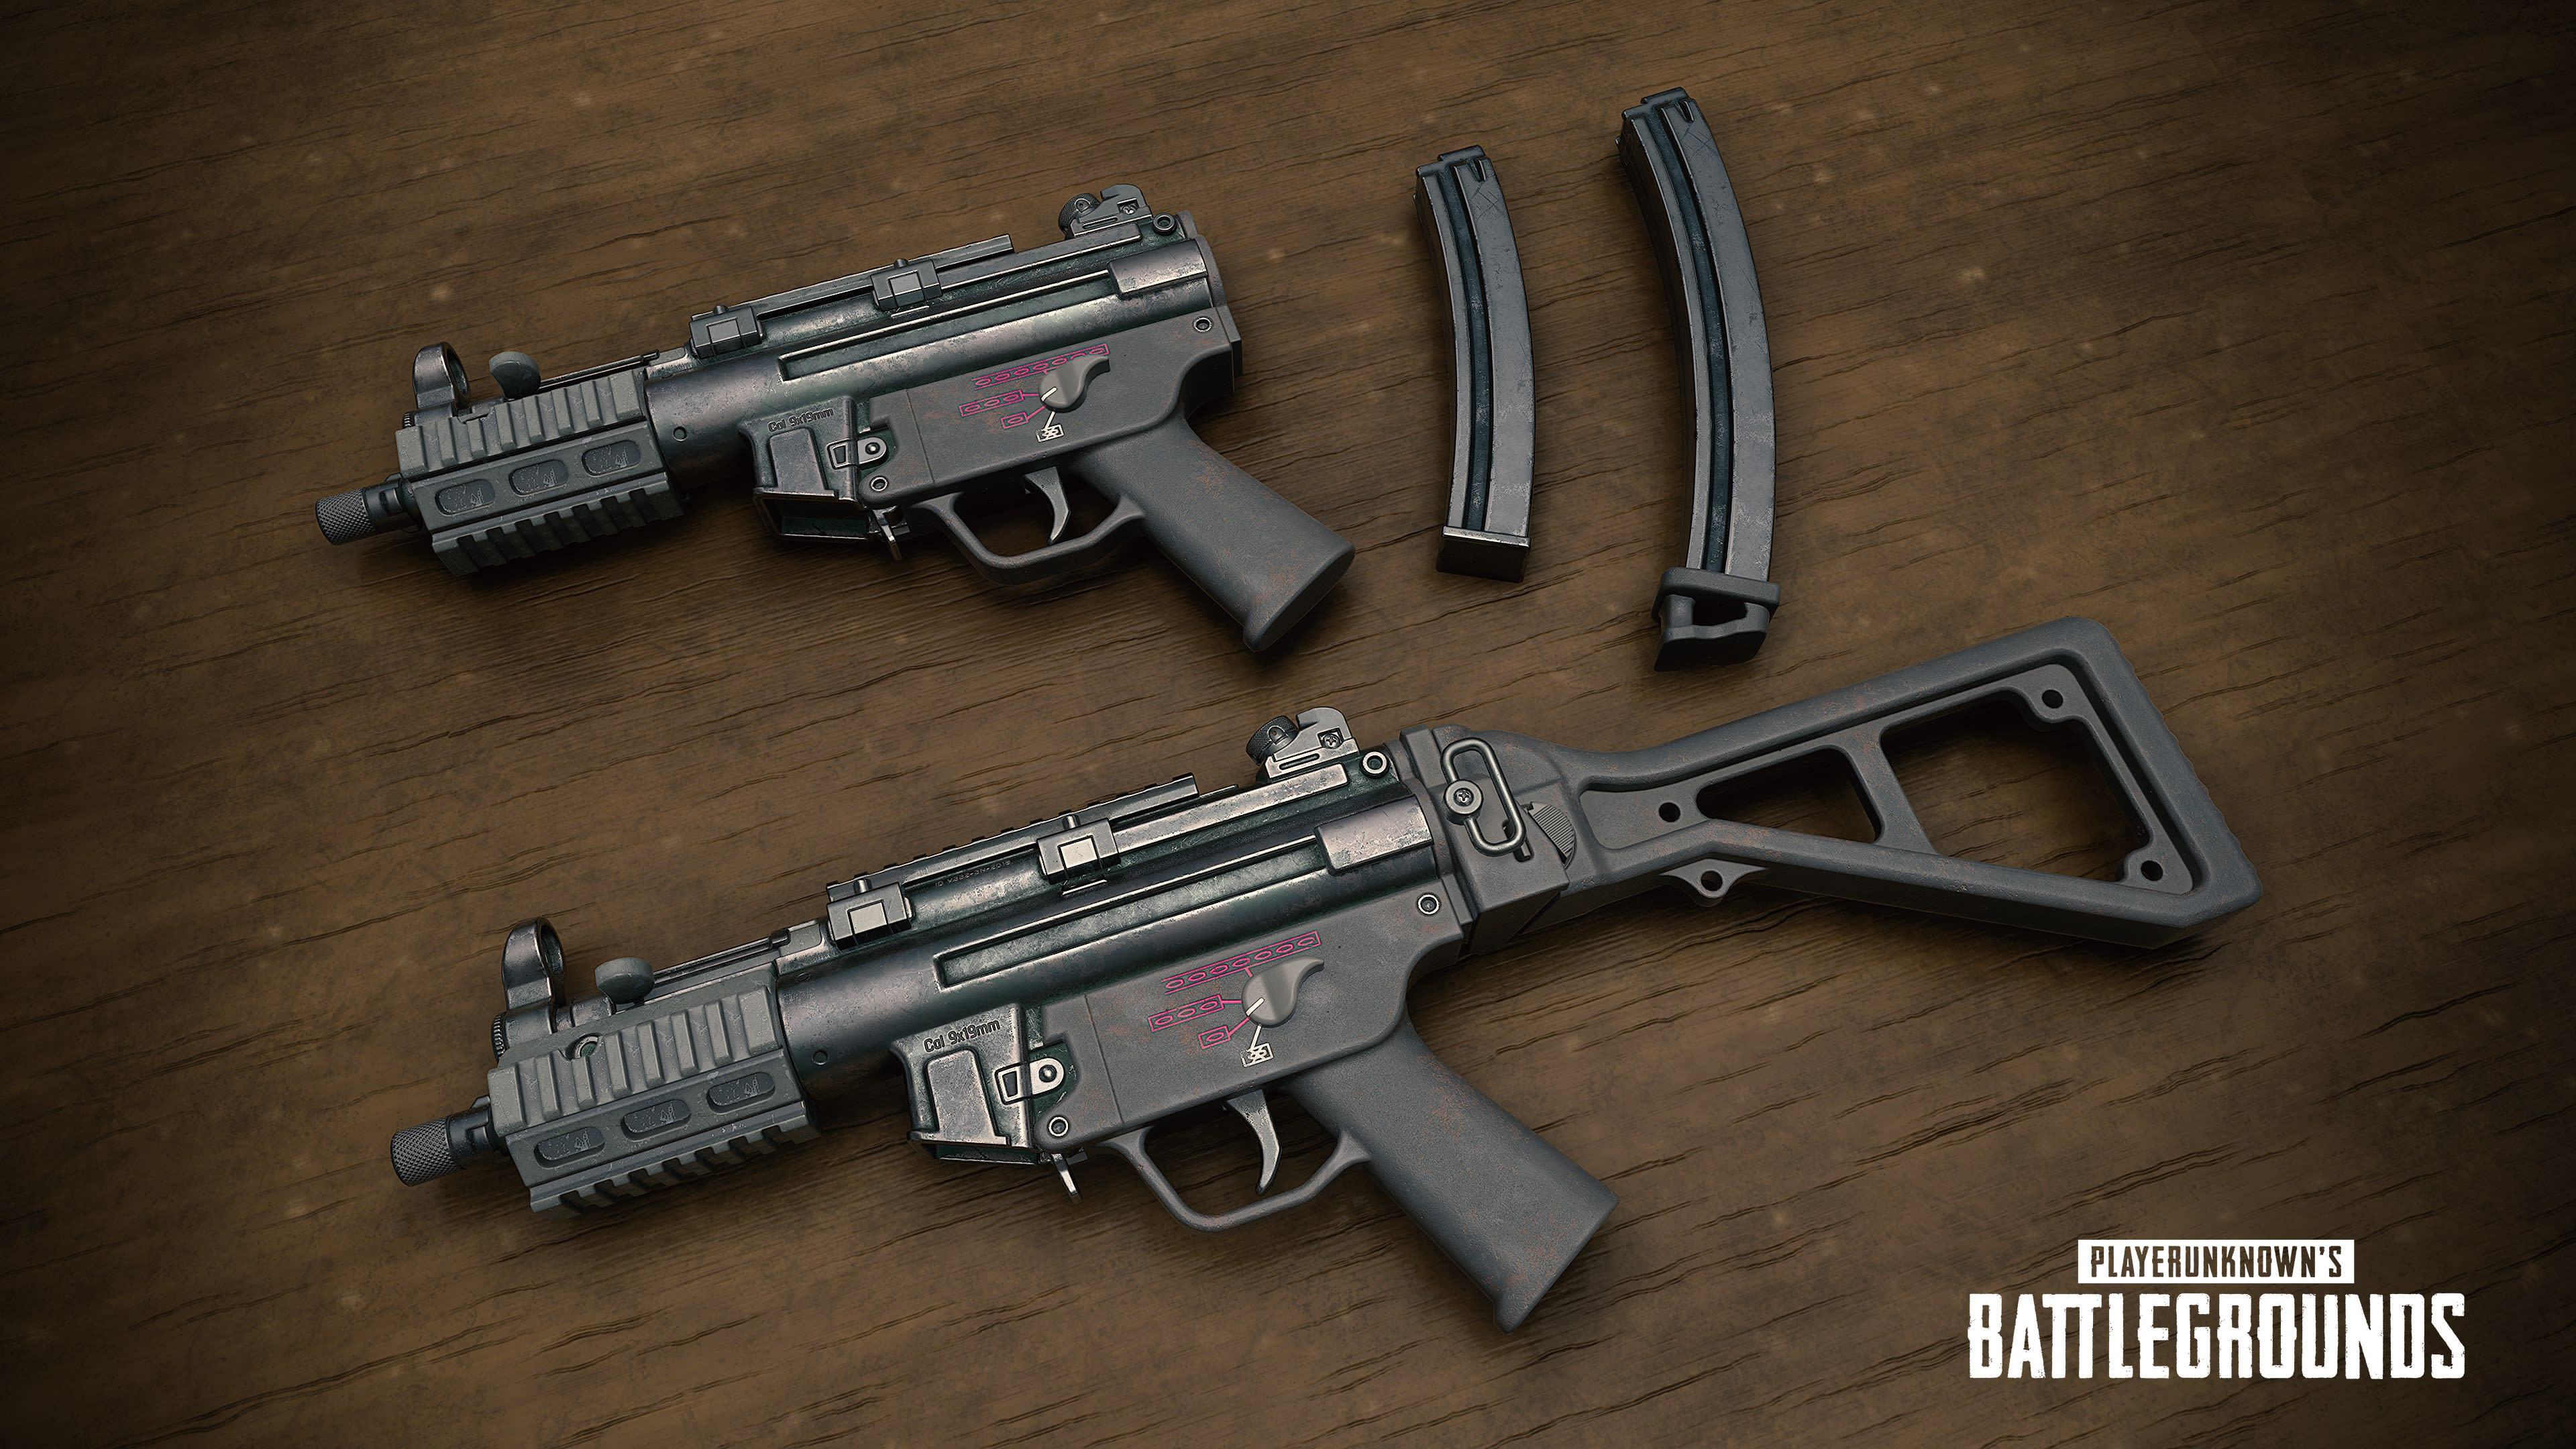 The MP5K will hit the PUBG Xbox PTS on Tuesday.